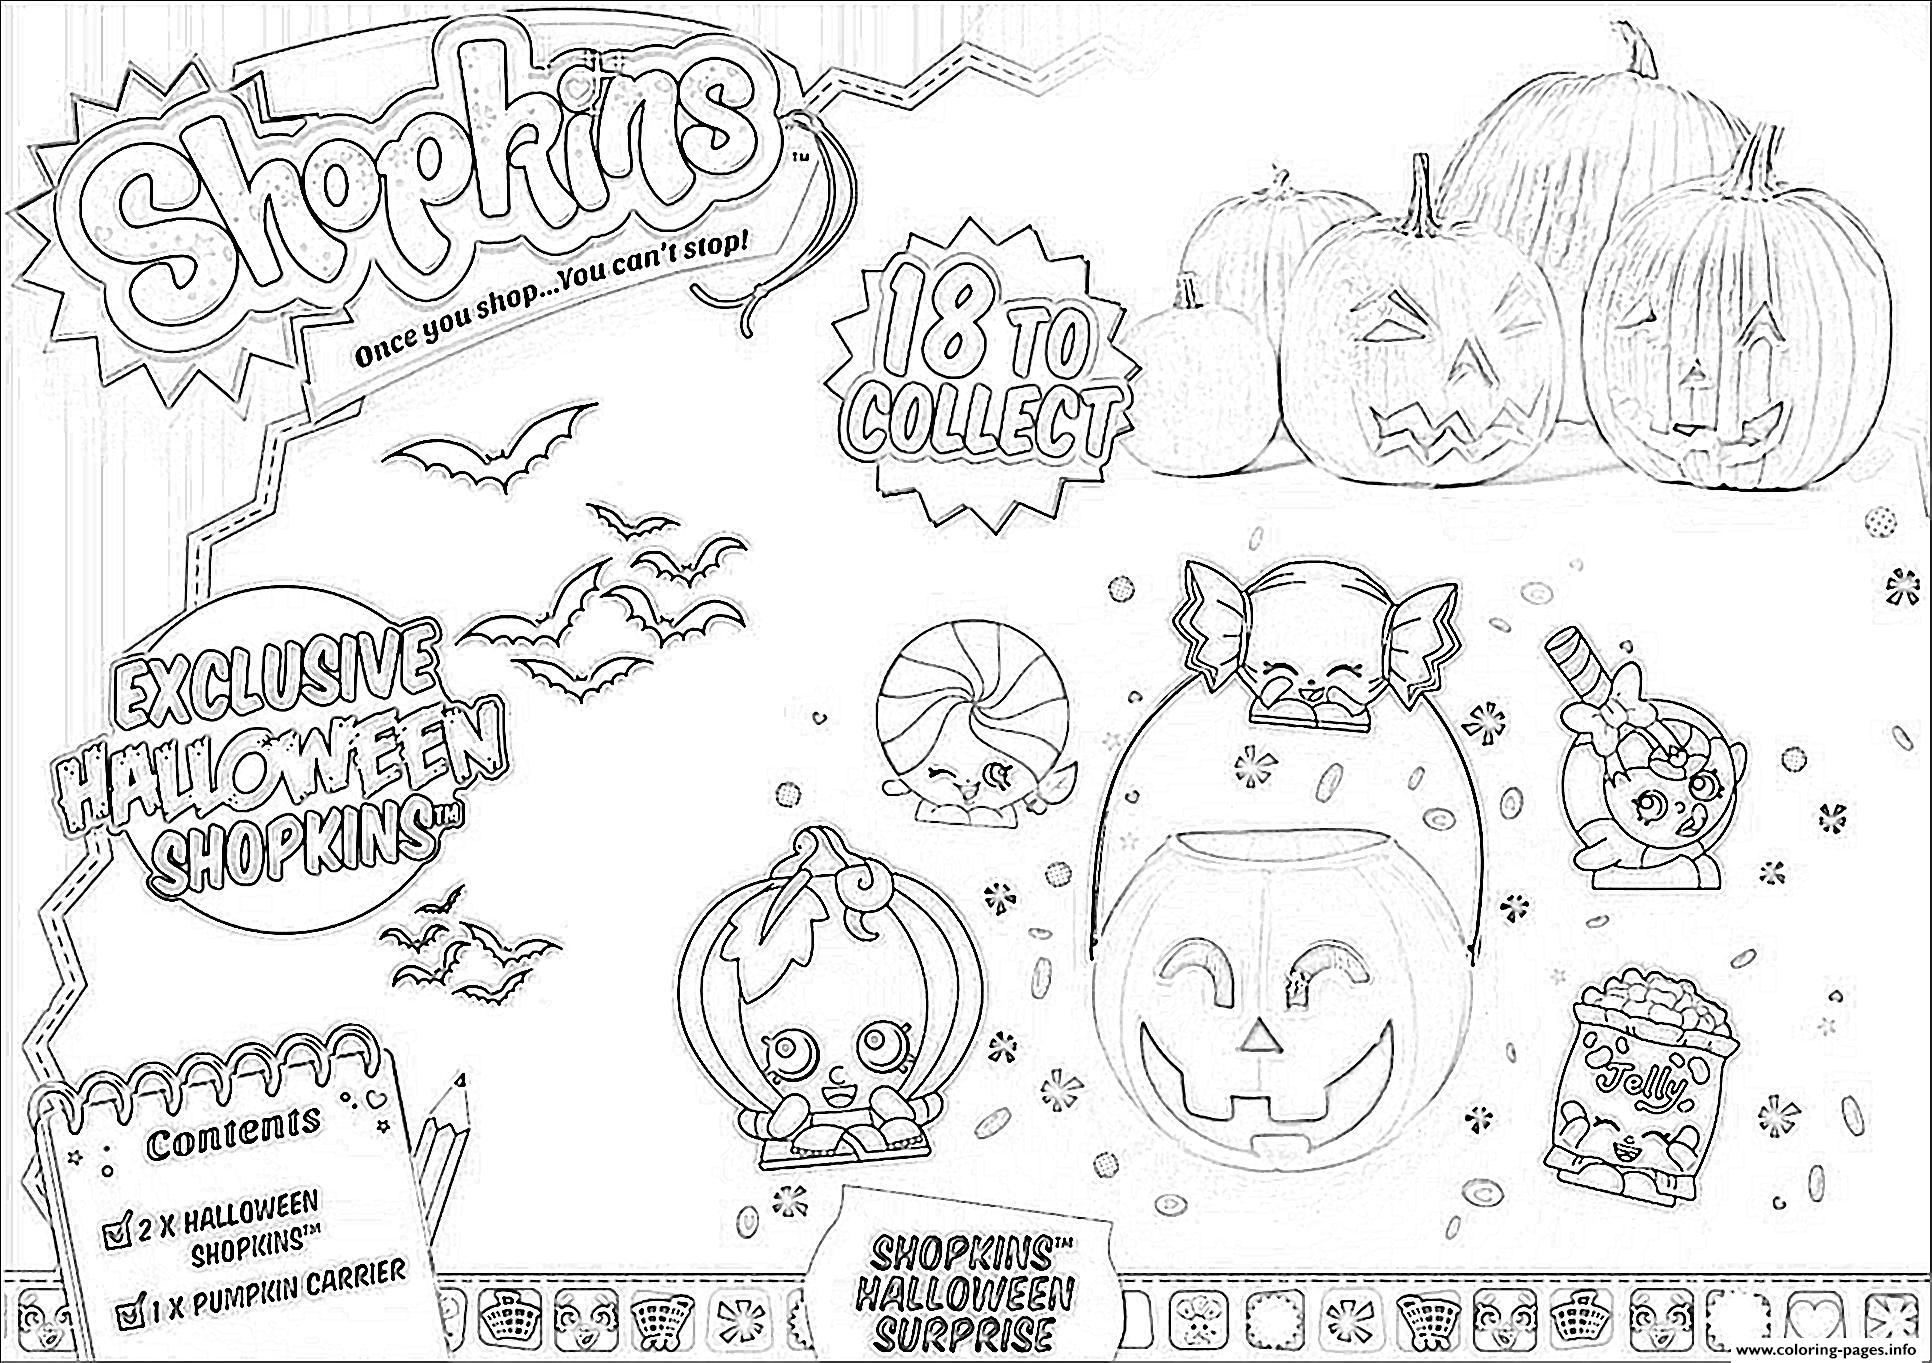 shopkins halloween coloring pages printable - Halloween Color Pages